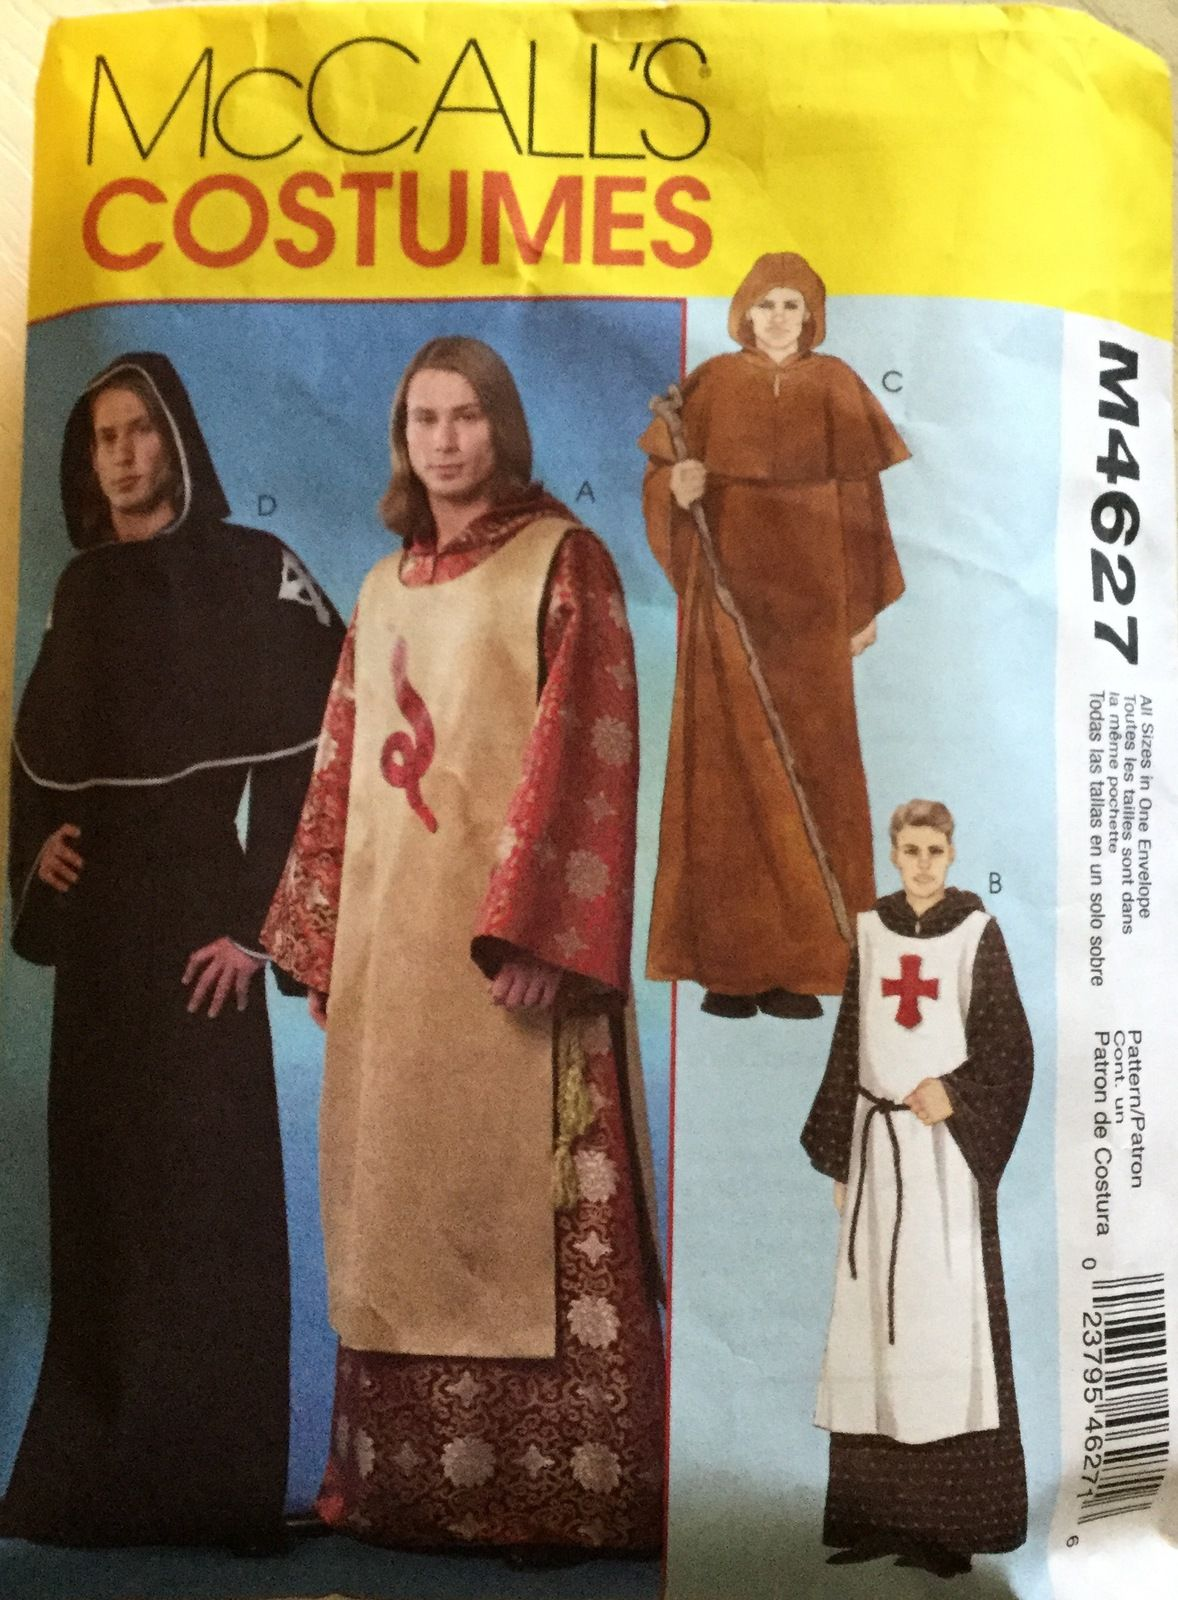 Mccalls m4627 mens medieval costumes sizes small xlarge mccalls m4627 mens medieval costumes sizes small xlarge butsewing patterns jeuxipadfo Images